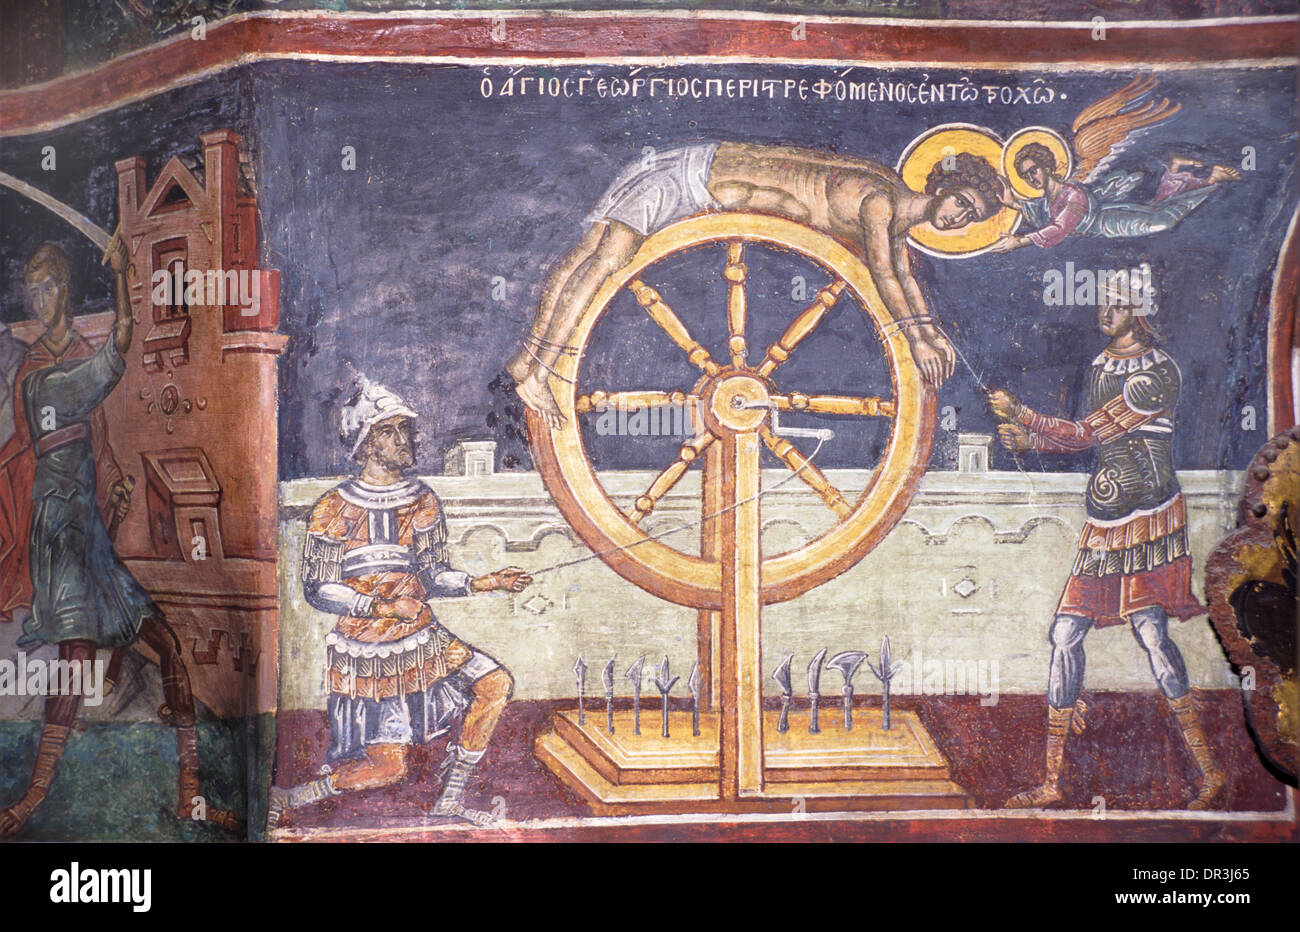 Torture or Punishment of Christian Martyr by Roman Soldiers Fresco Narthex of Dionysiou Monastery Mount Athos Greece - Stock Image